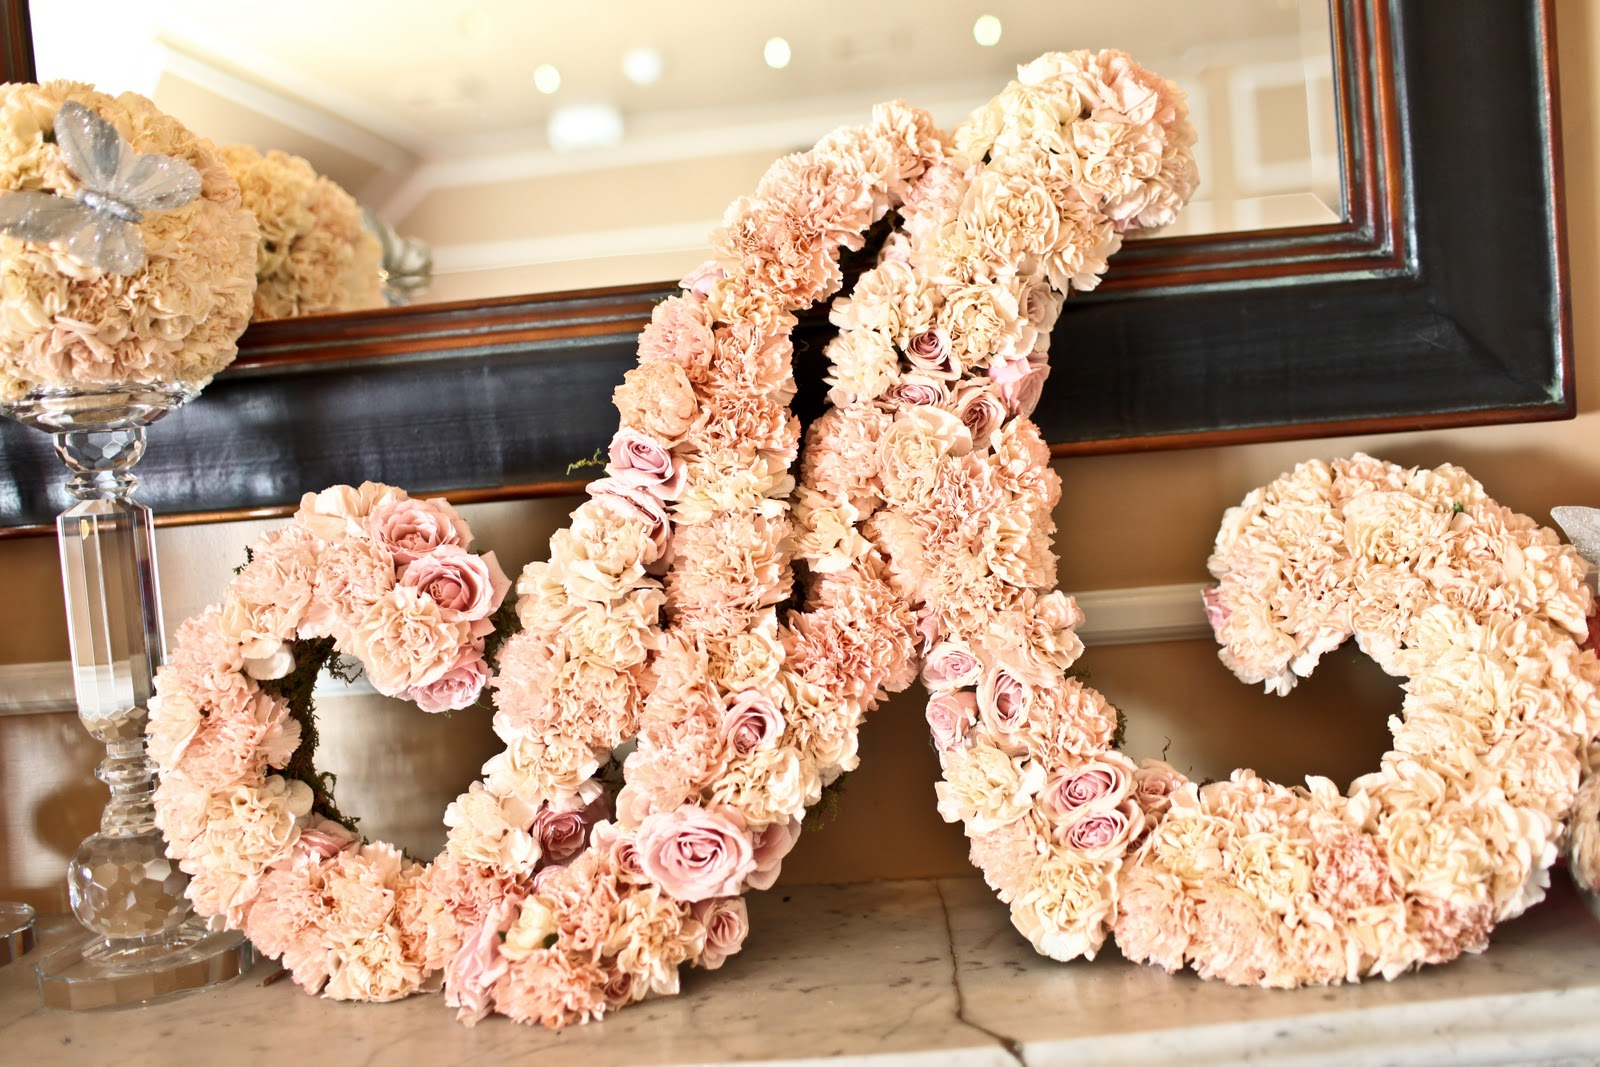 Chandelier events blog inspiration for weddings events parties chandelier event everything roses 1st birthday party aloadofball Image collections